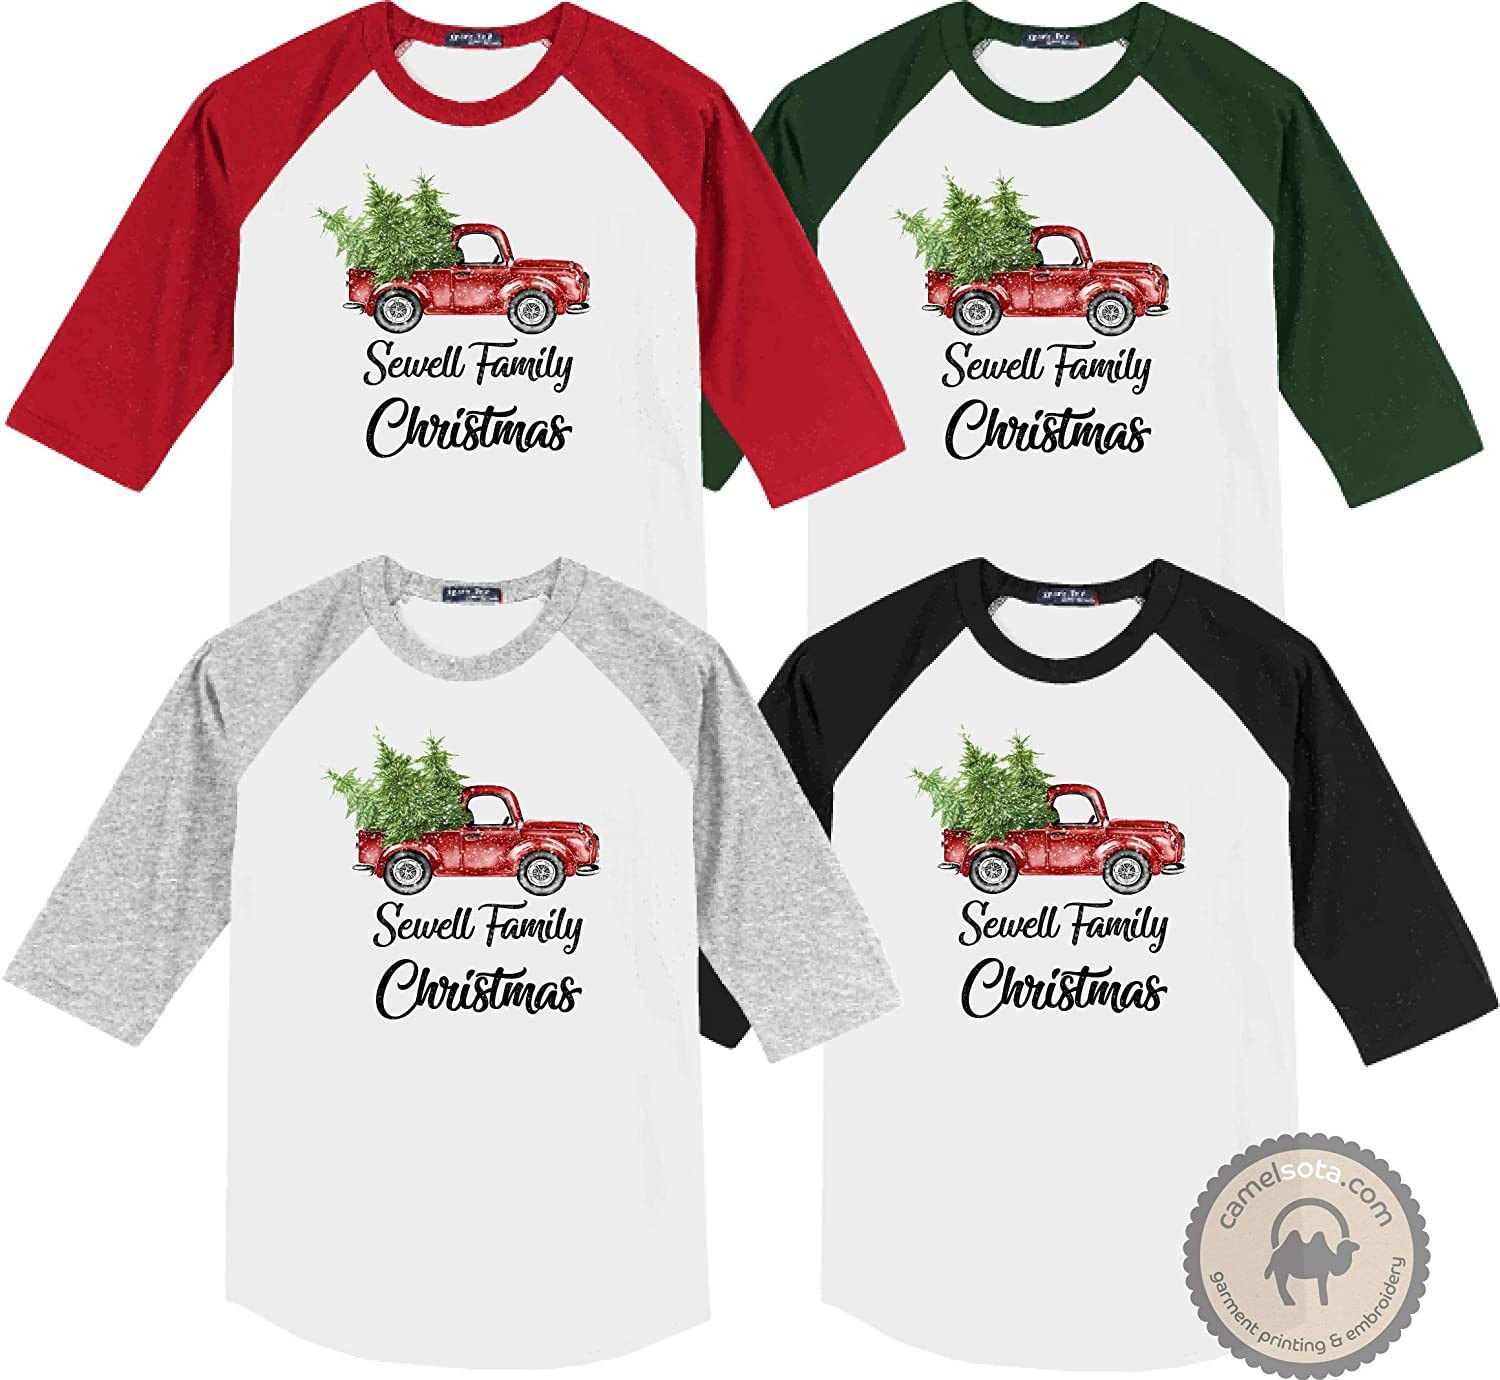 Matching Christmas Shirts For Family.Amazon Com Family Coordinating Christmas Shirts